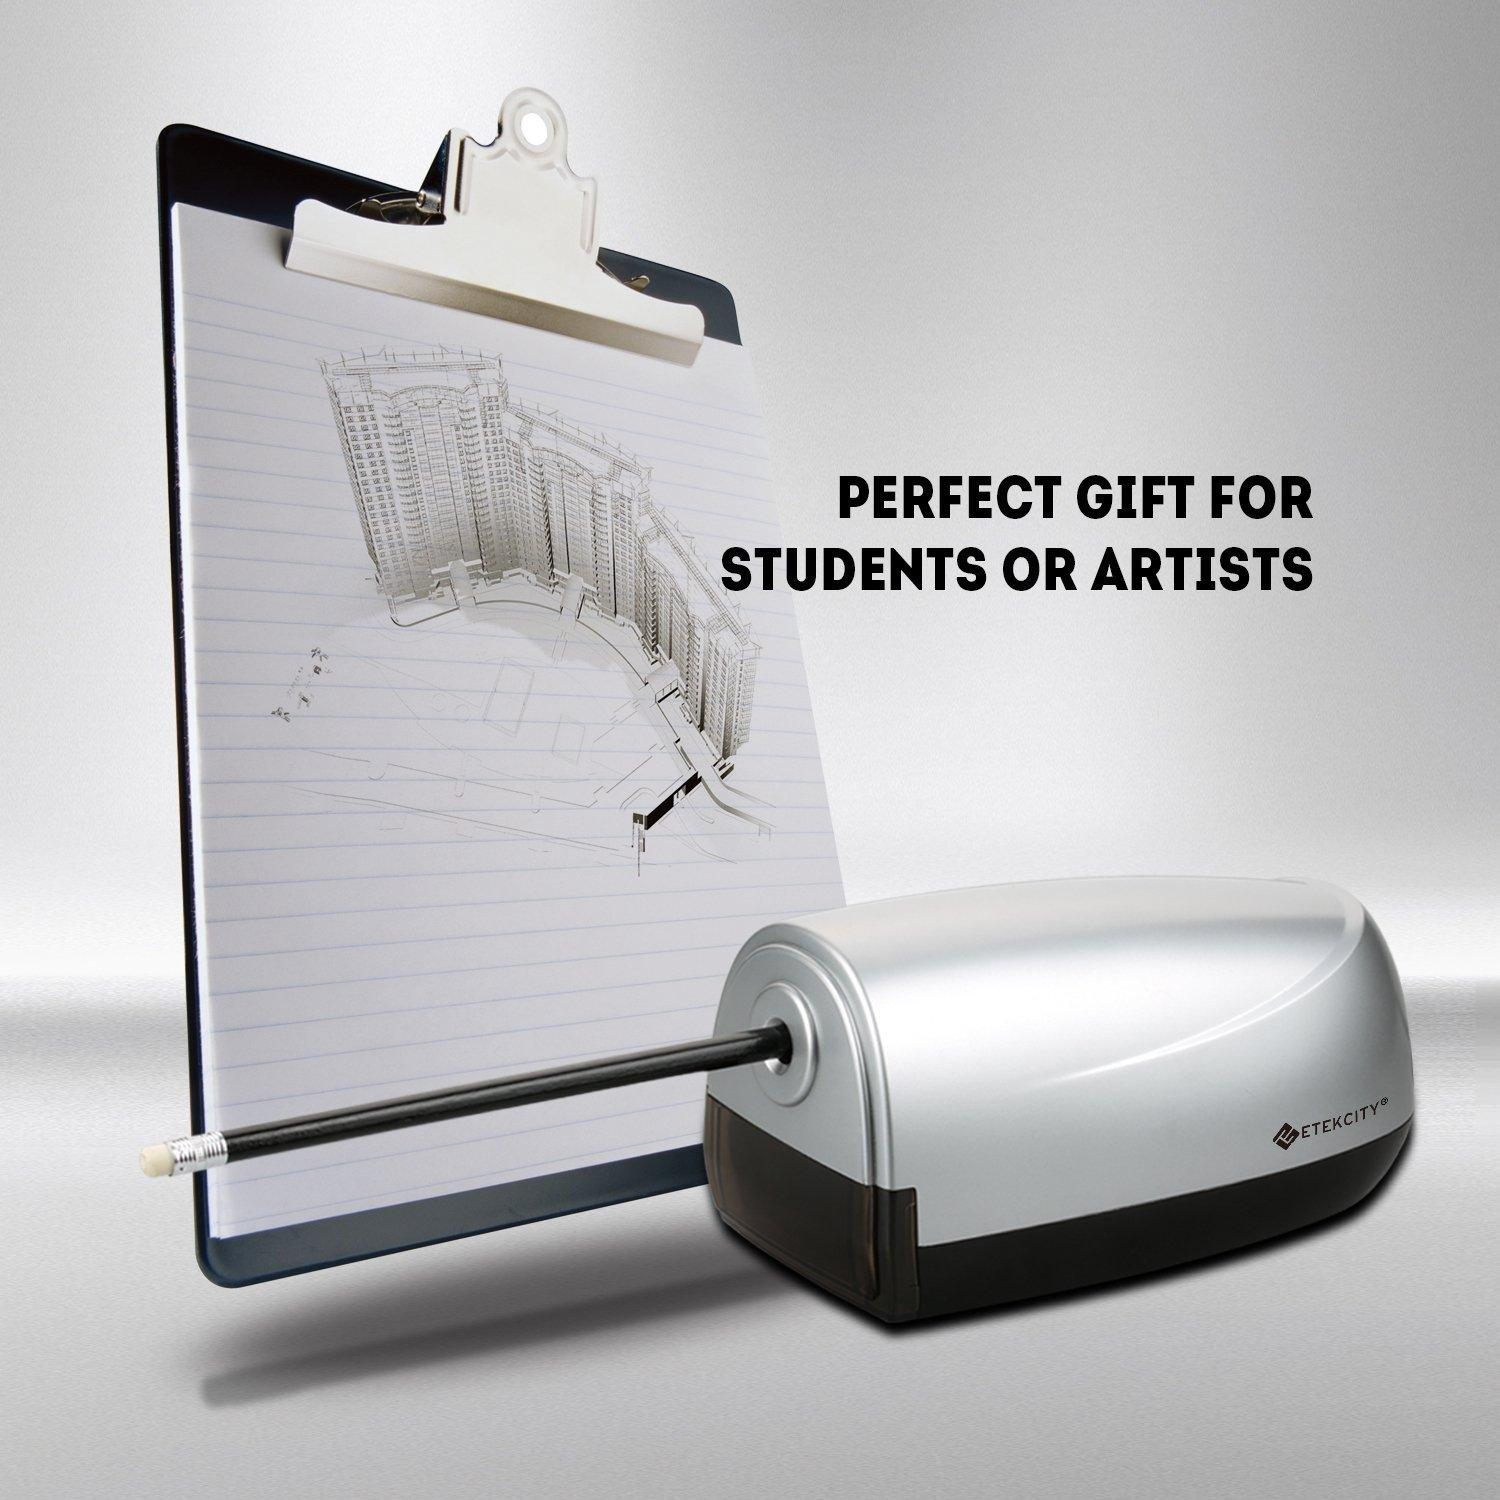 Etekcity Electric Heavy Duty Pencil Sharpener, Automatic Feed and Dispense